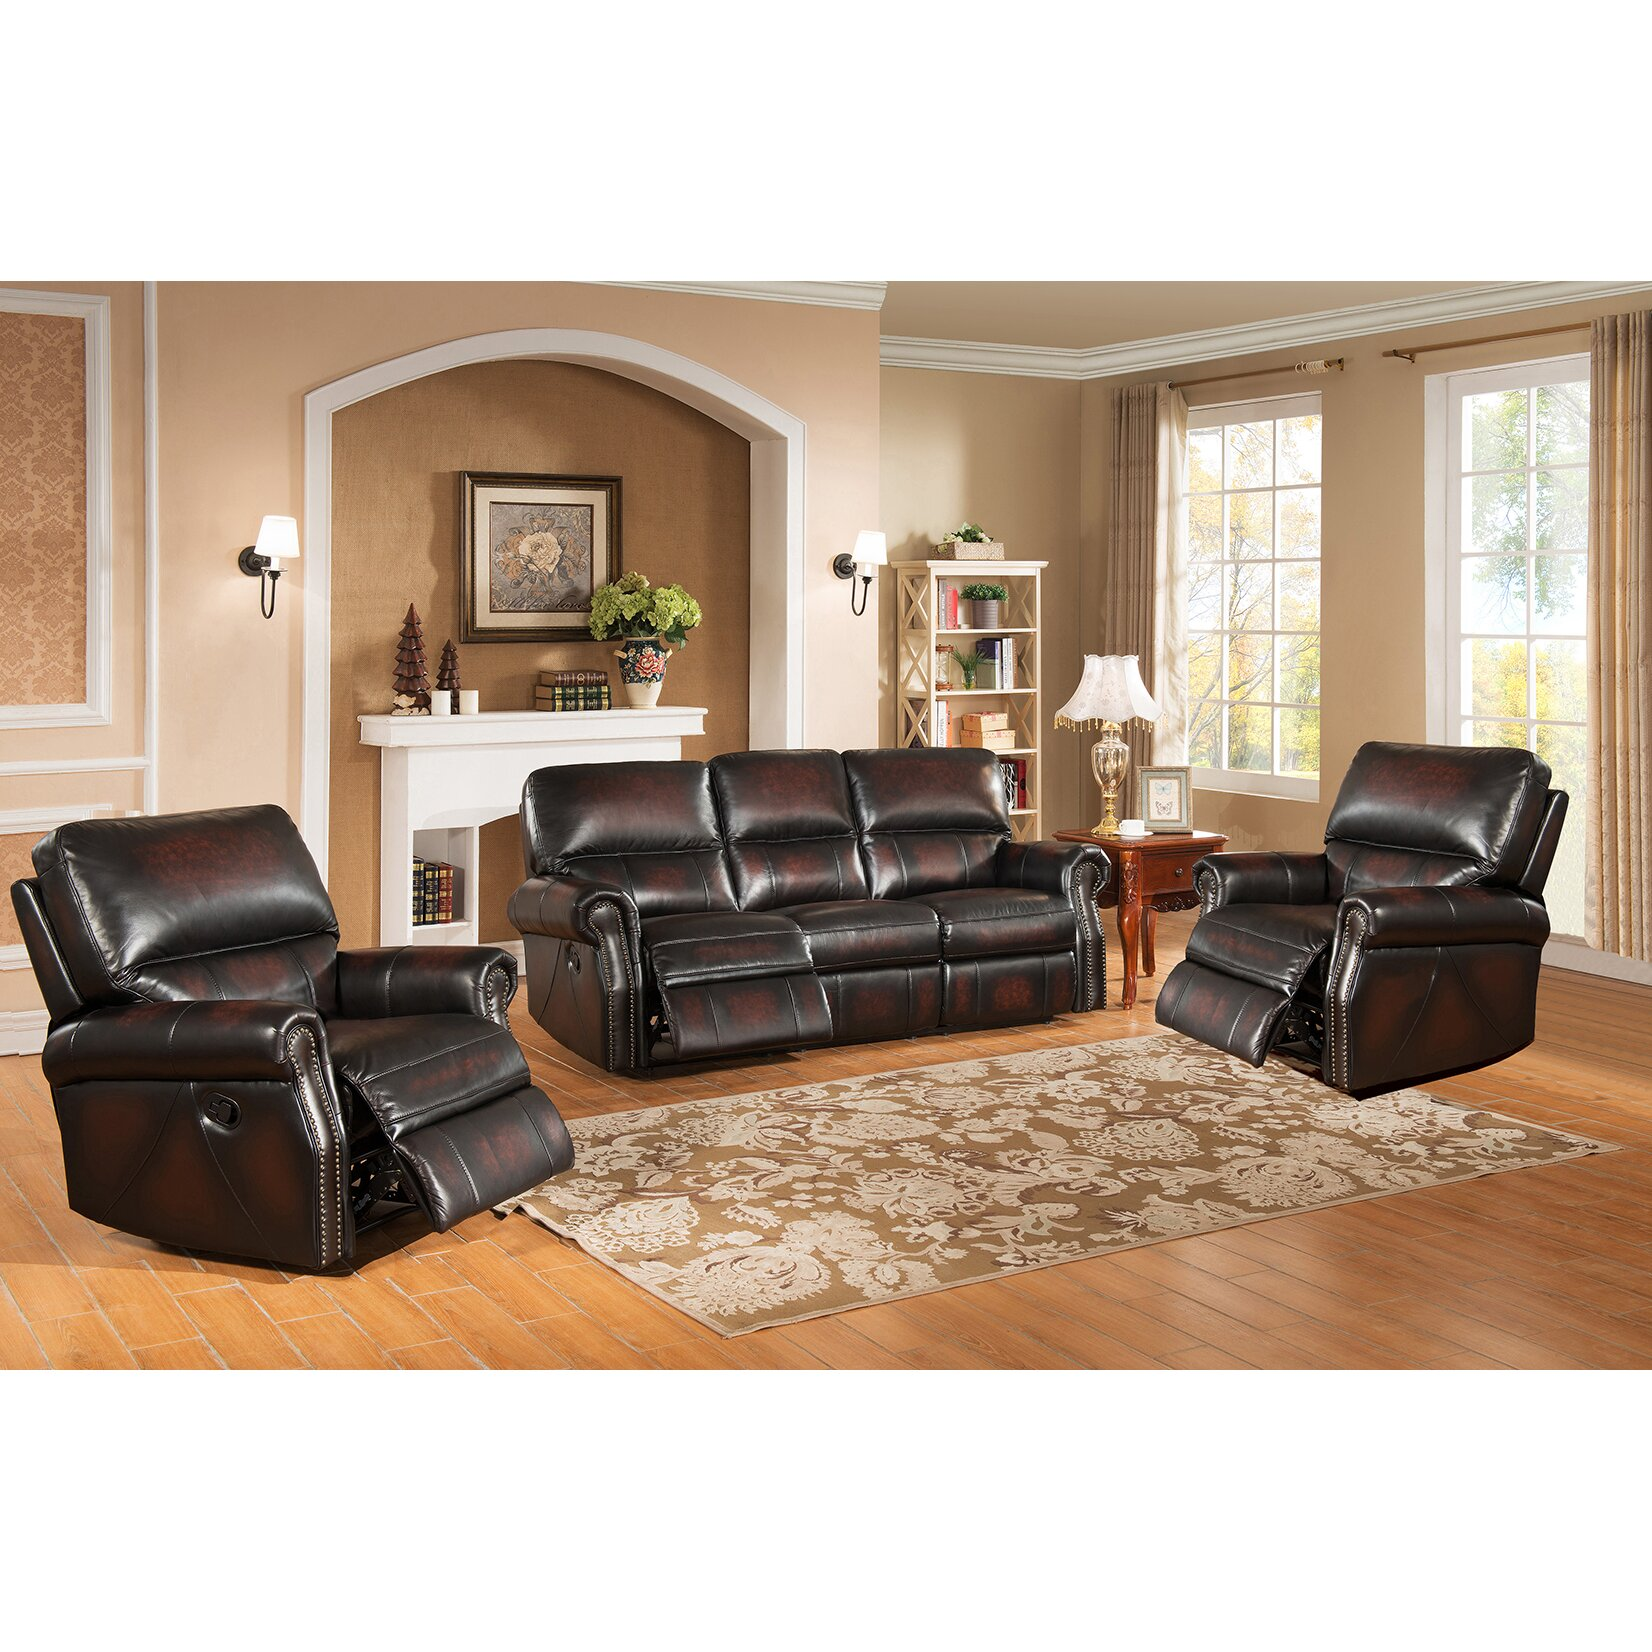 Amax nevada 3 piece leather living room set reviews for 3 piece living room set